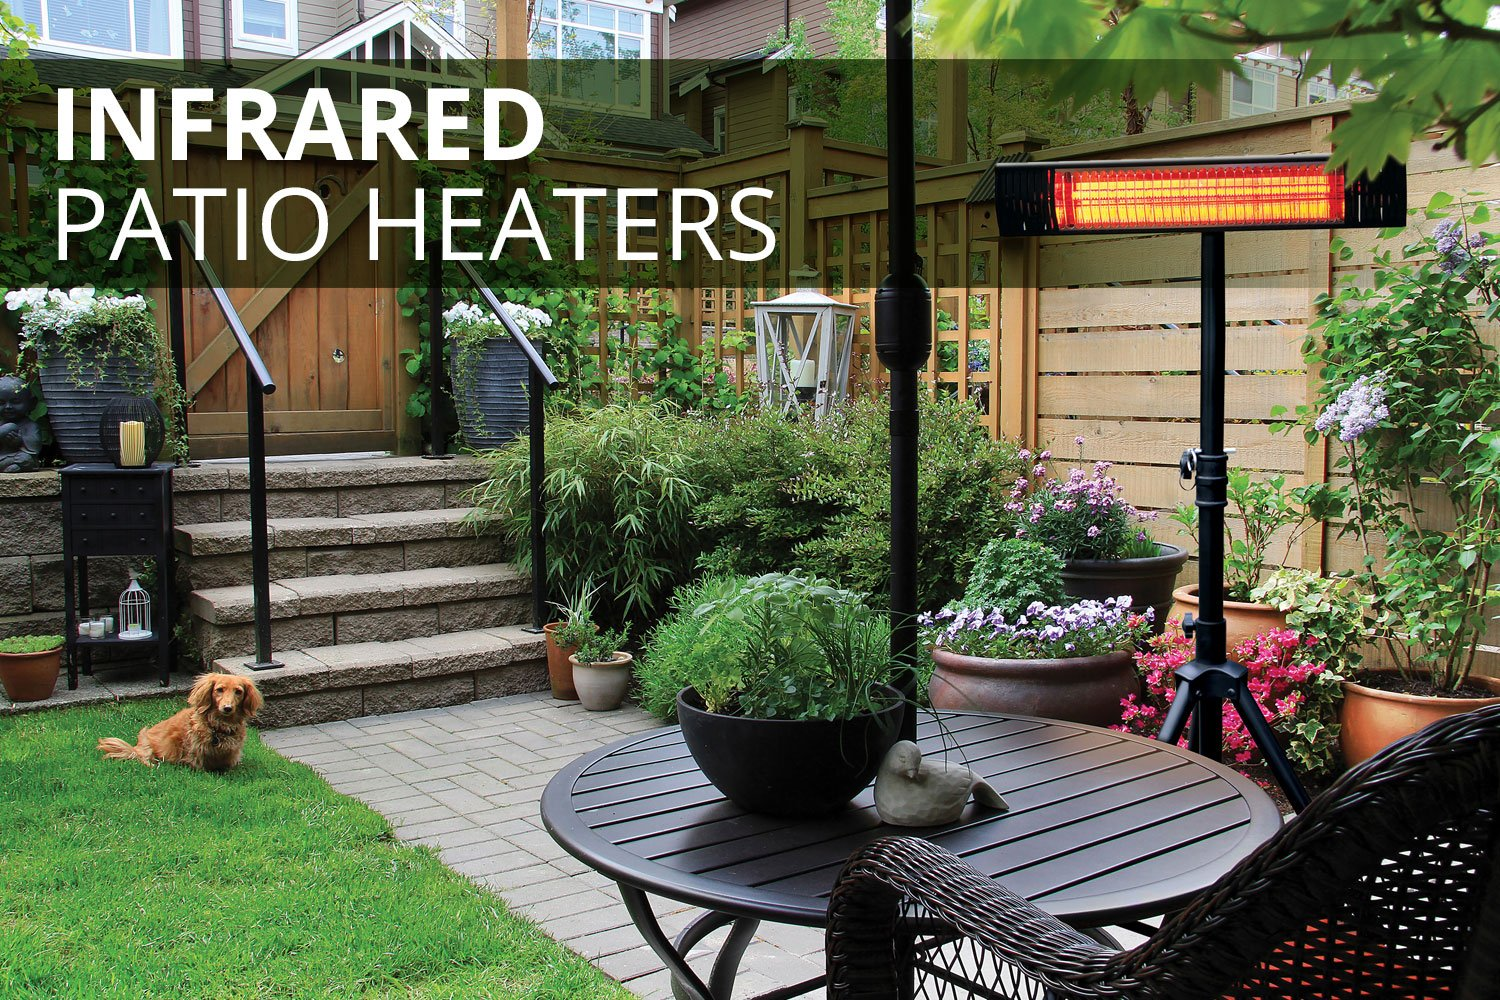 Infrared patio heaters slide image